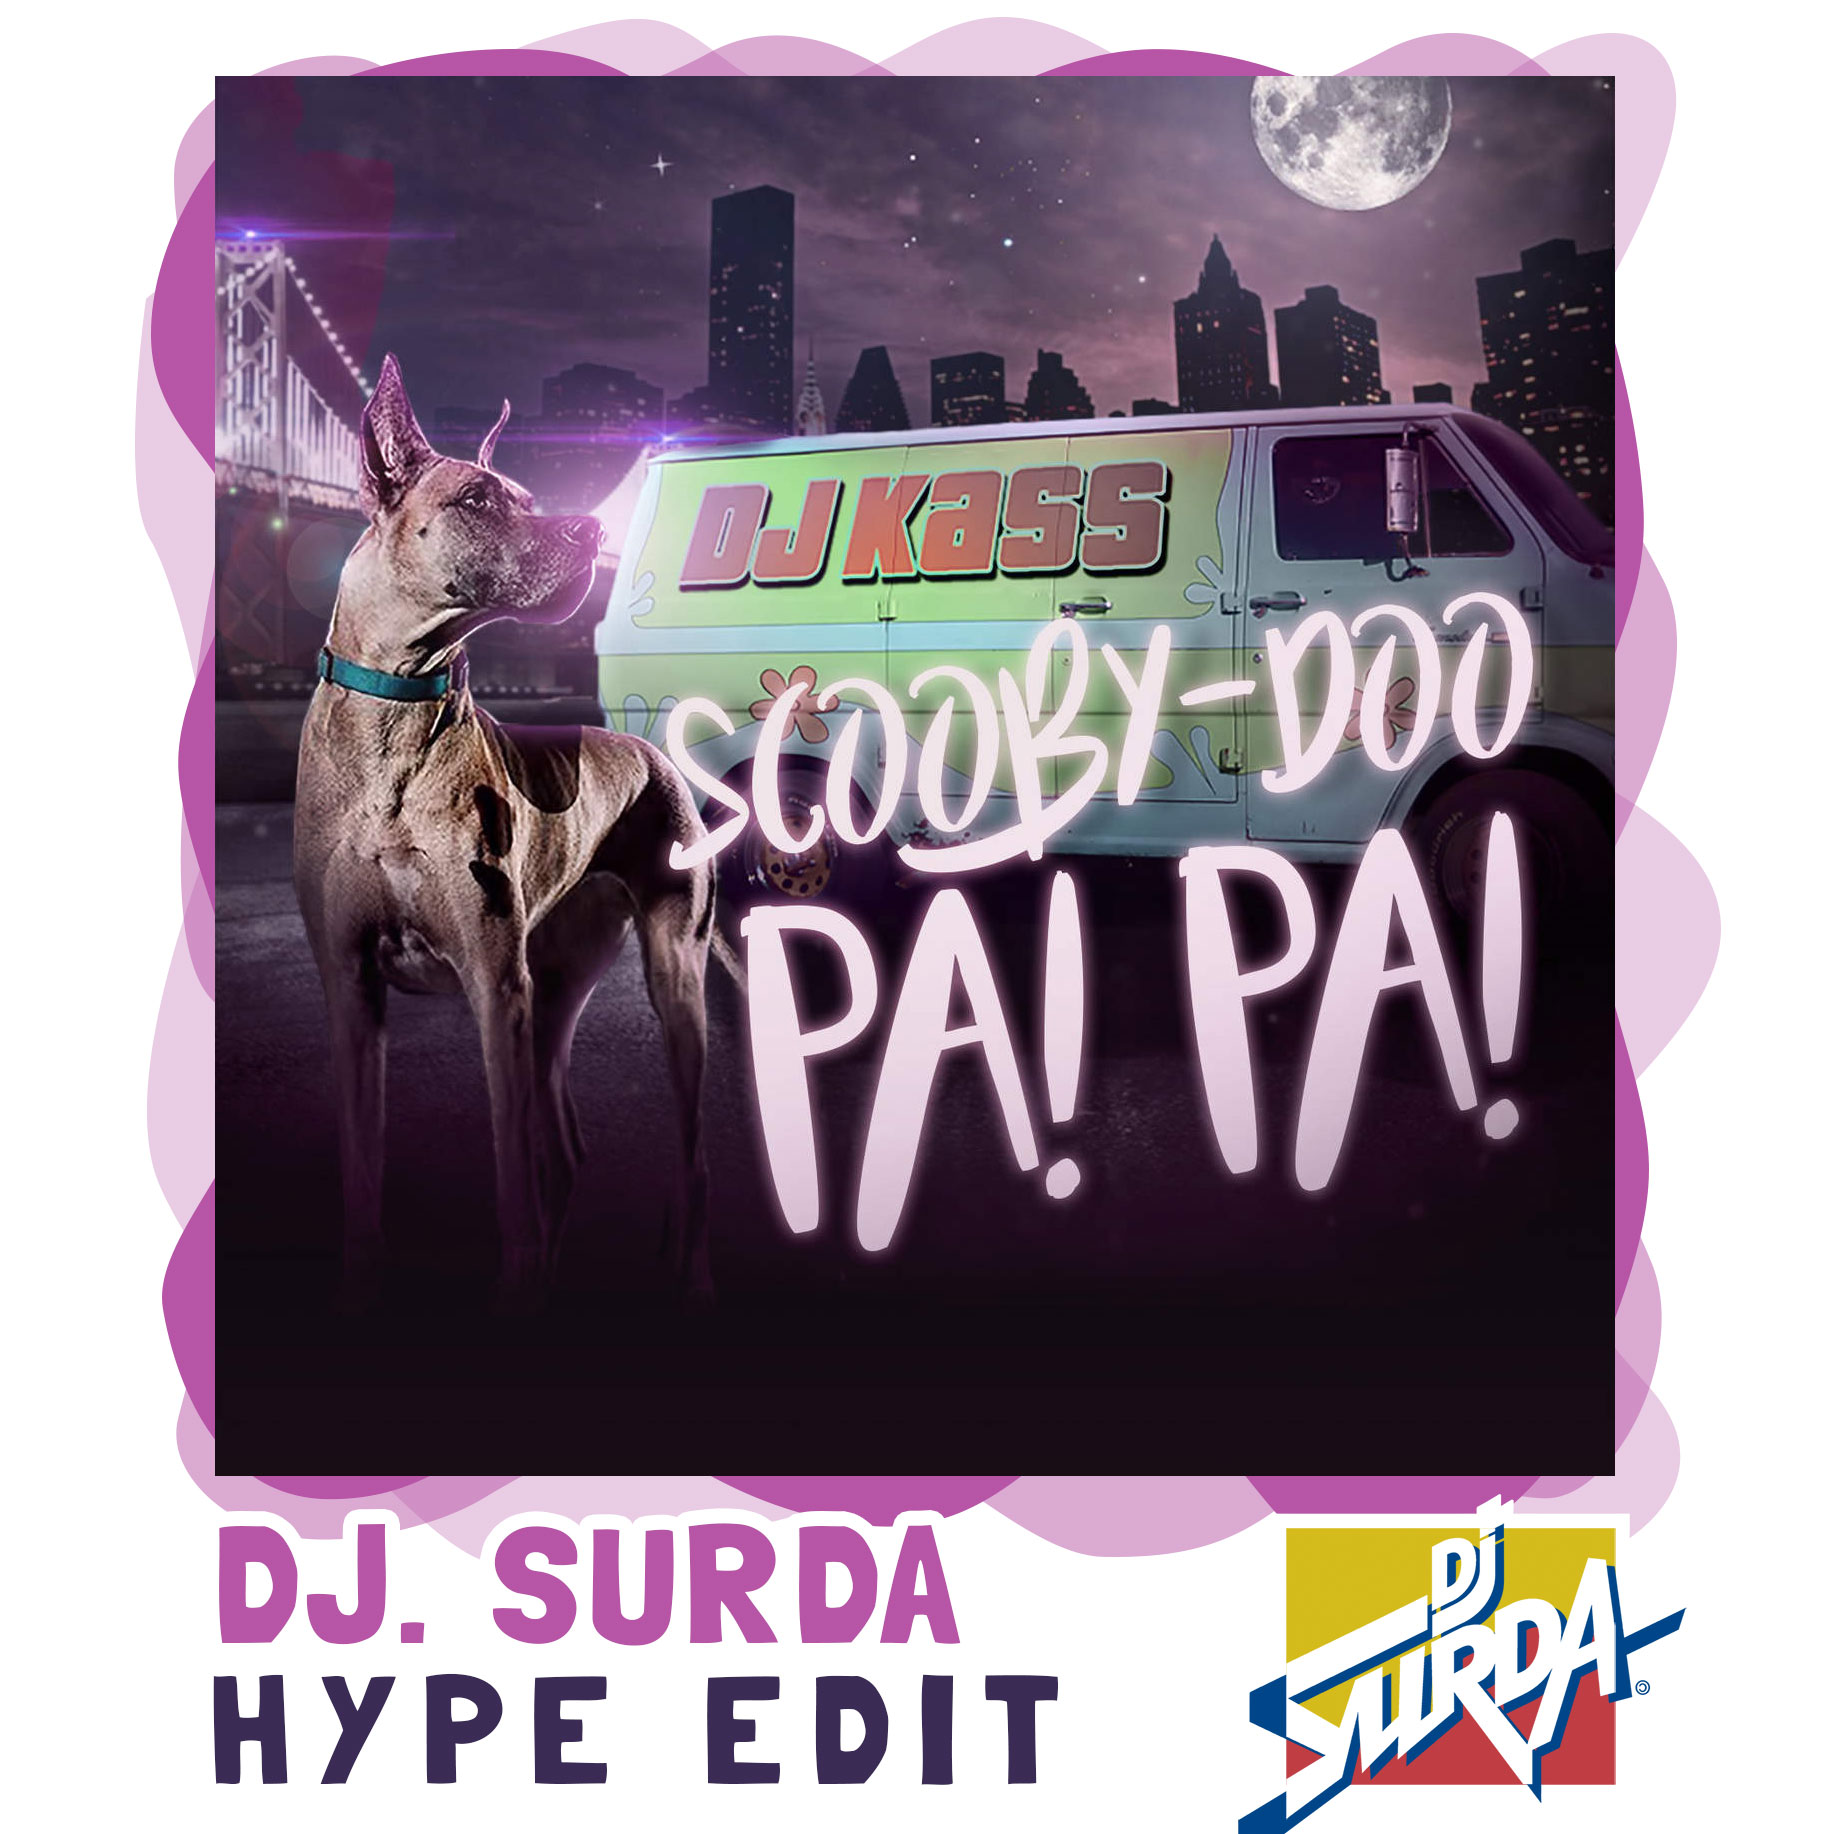 DJ Kass – Scooby Doo Pa Pa (Dj. Surda Man's Not Hot Extended Hype Edit)